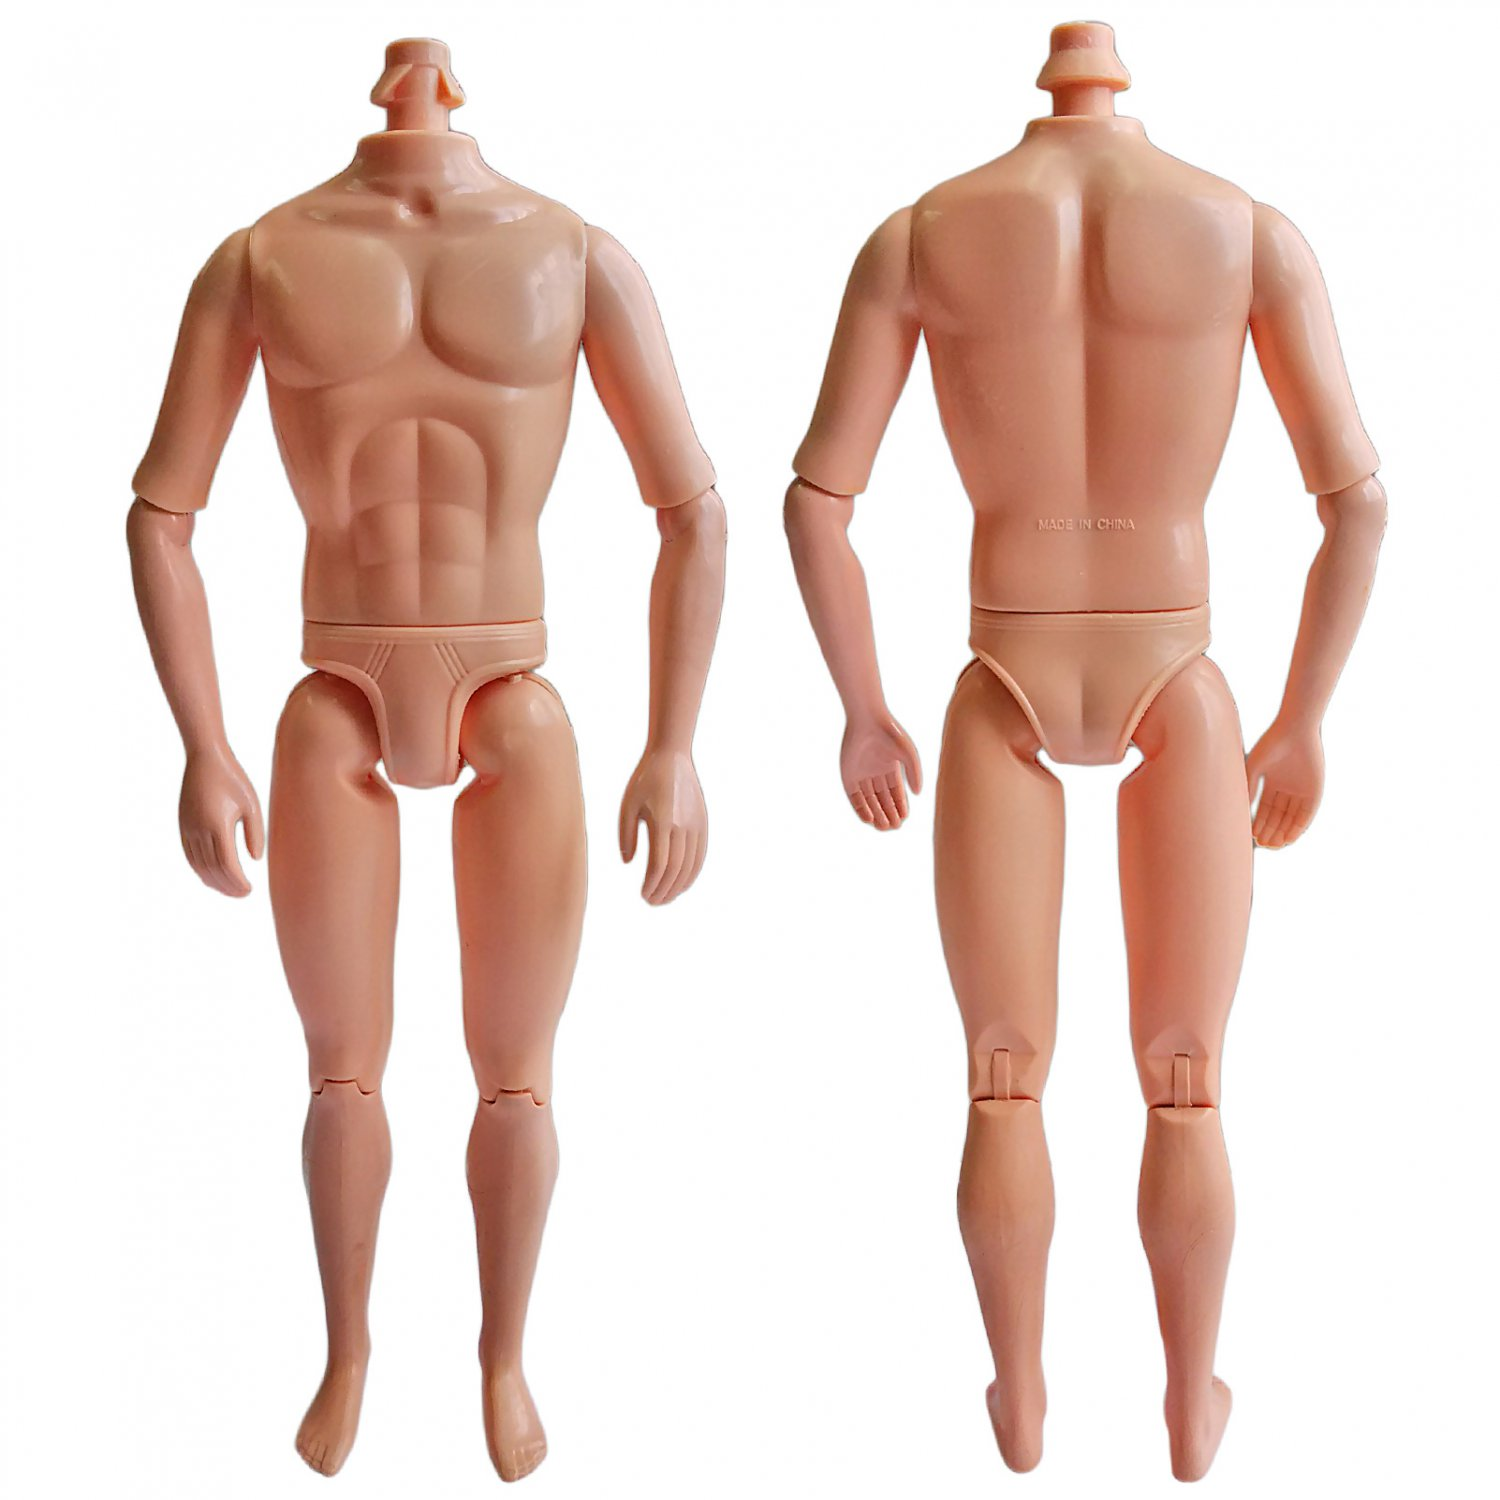 """Naked Nude Raw Body Custom Muscular Men Male 1/6 Scale Action Figure 12"""""""" Dolls #13306"""